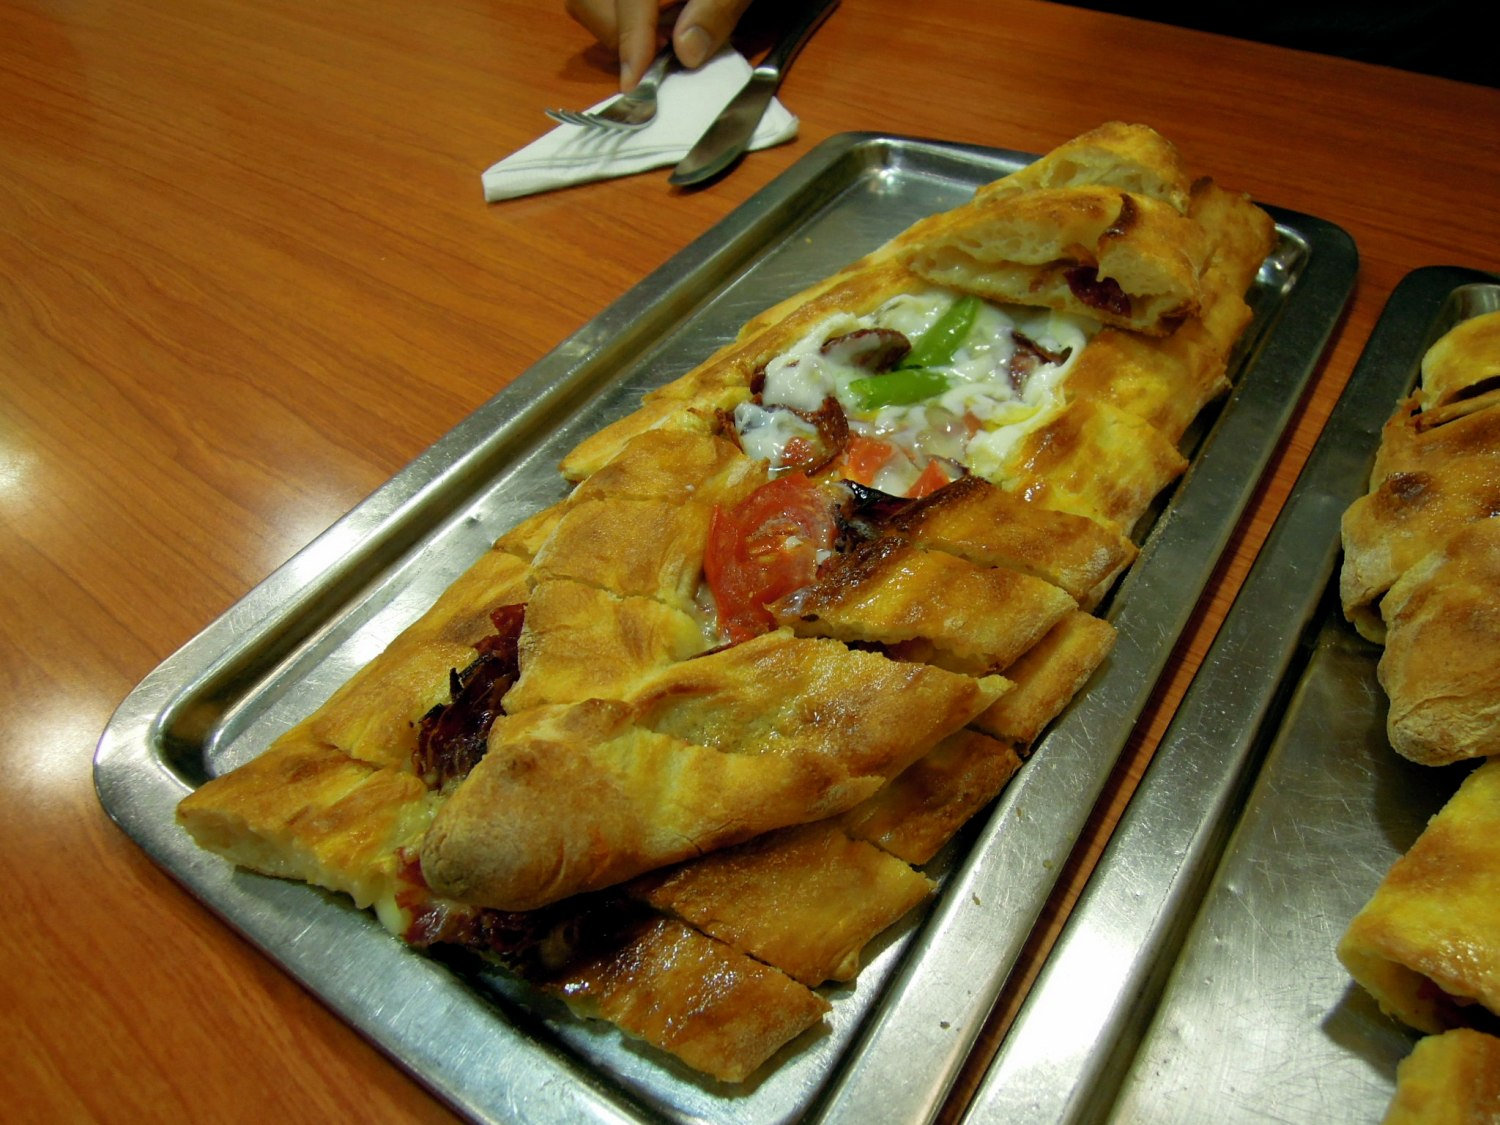 Mixed pide